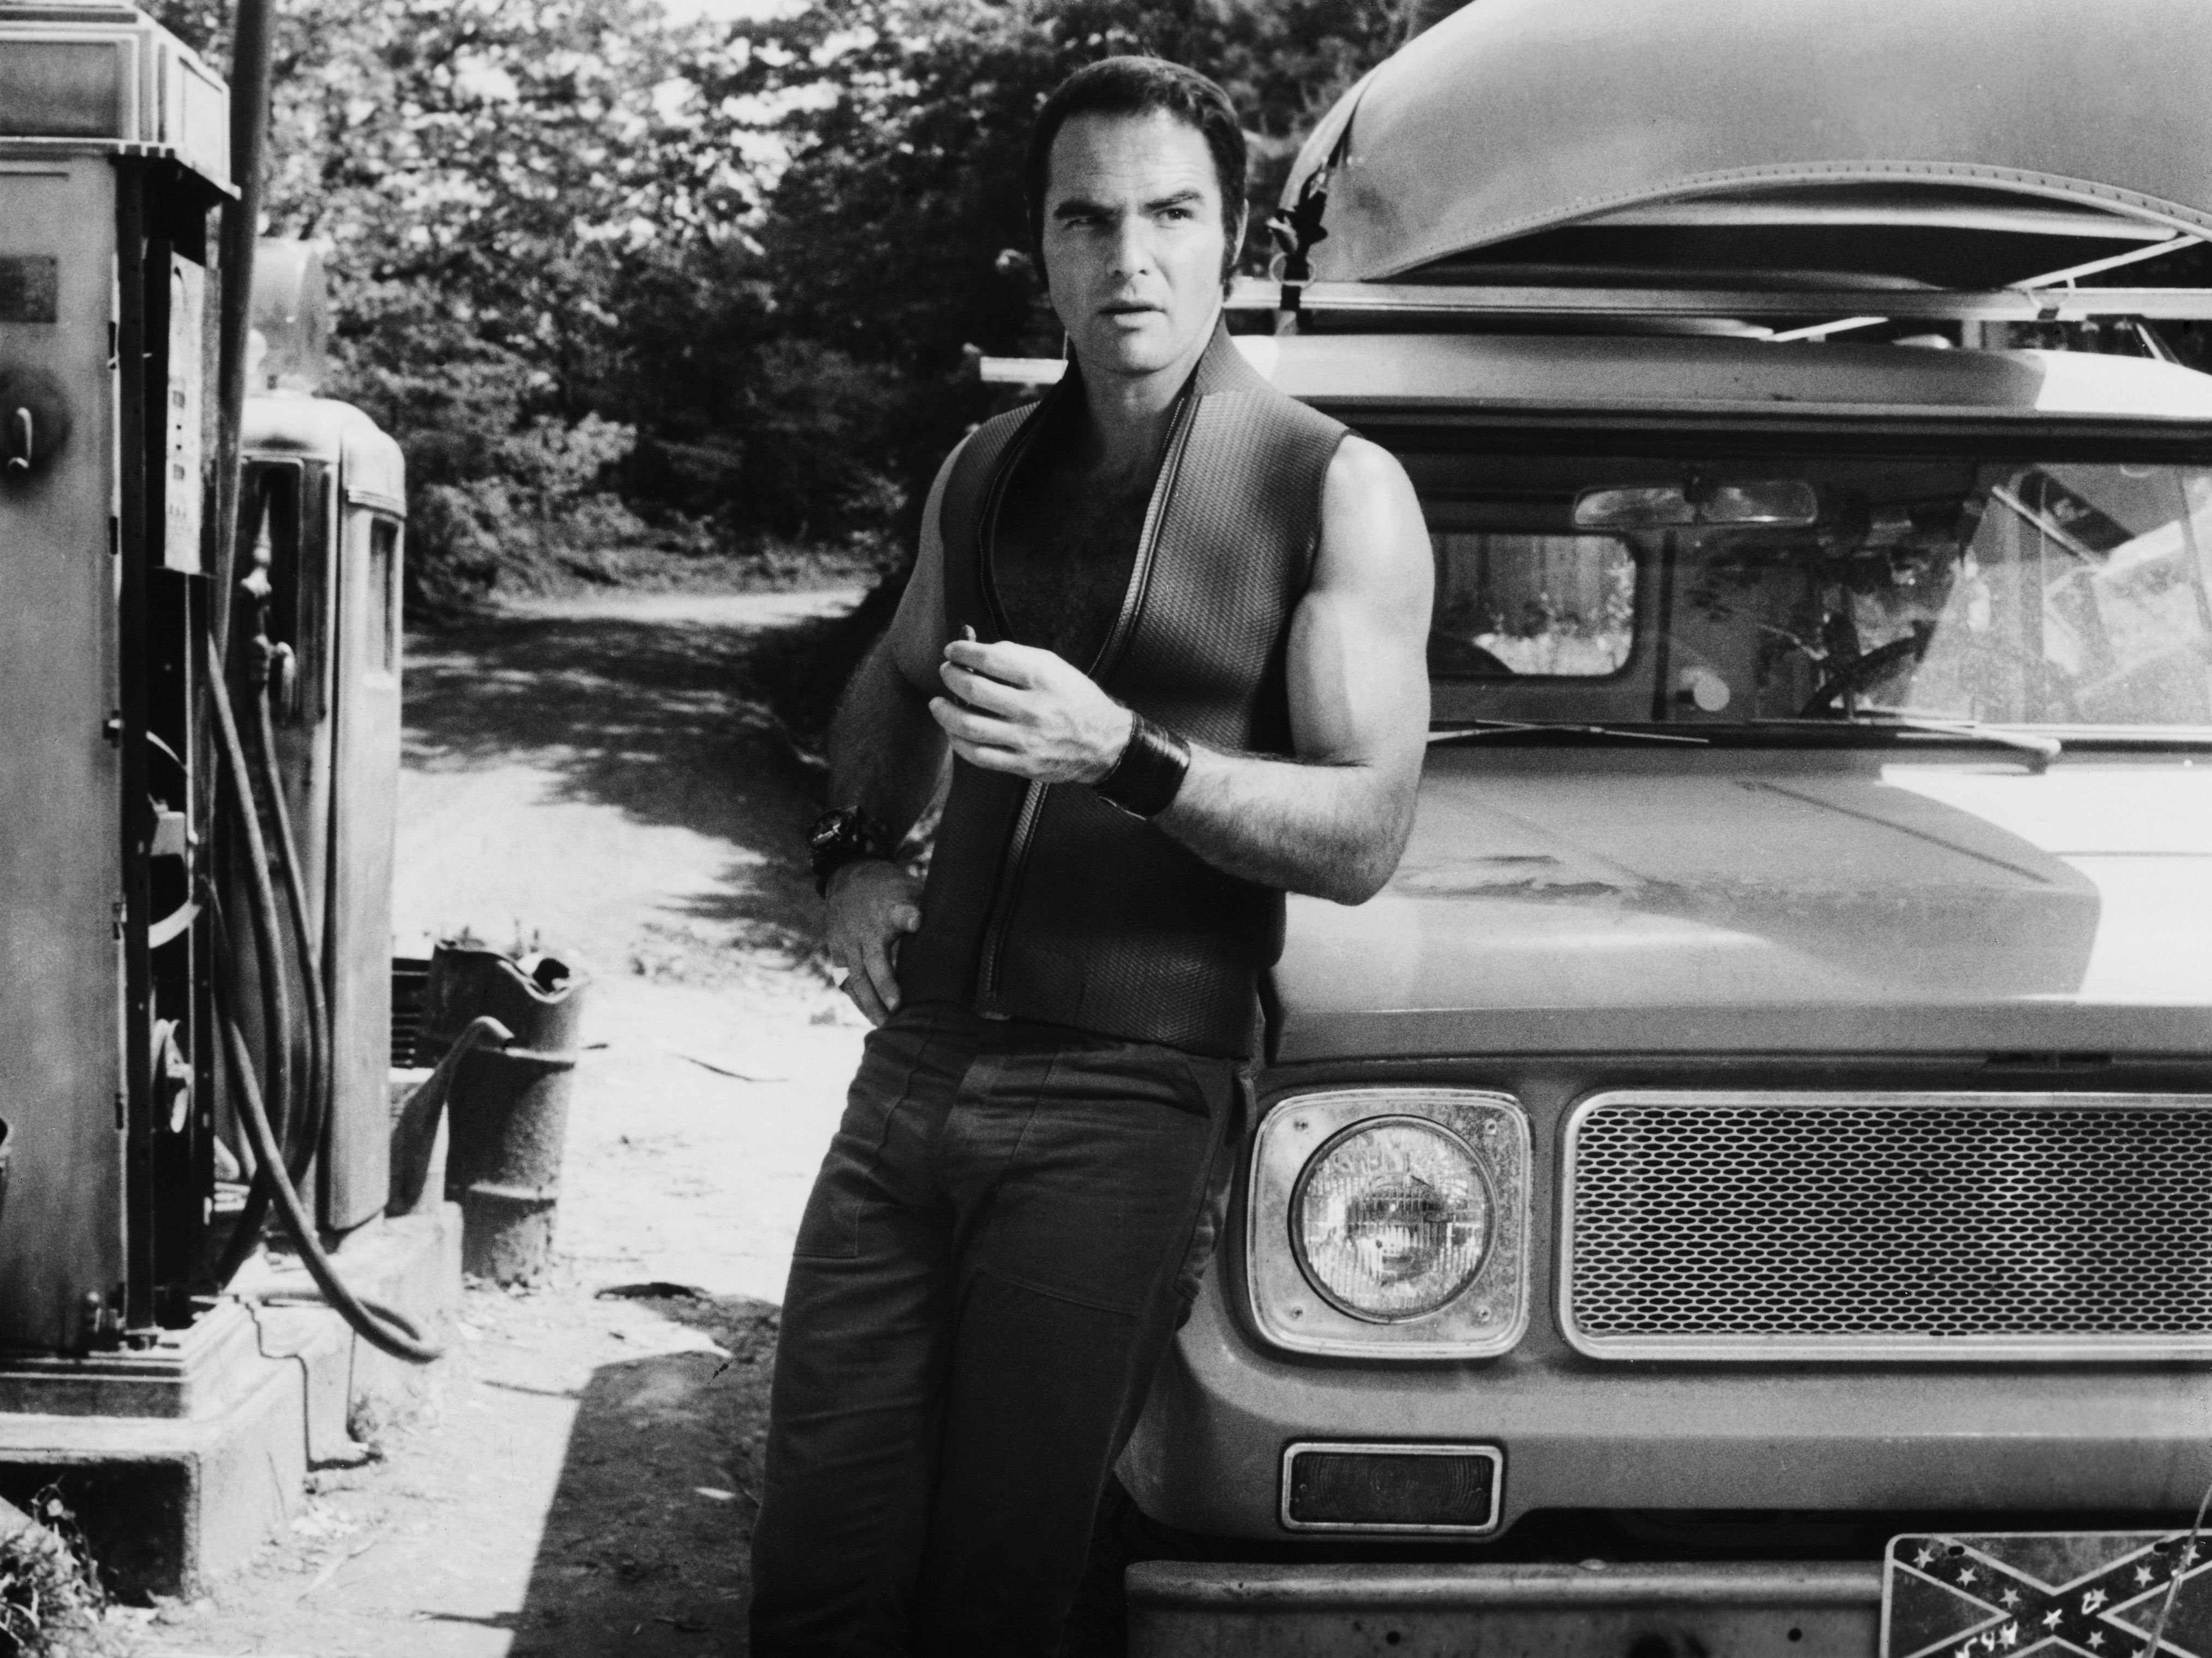 Burt Reynolds in Deliverance